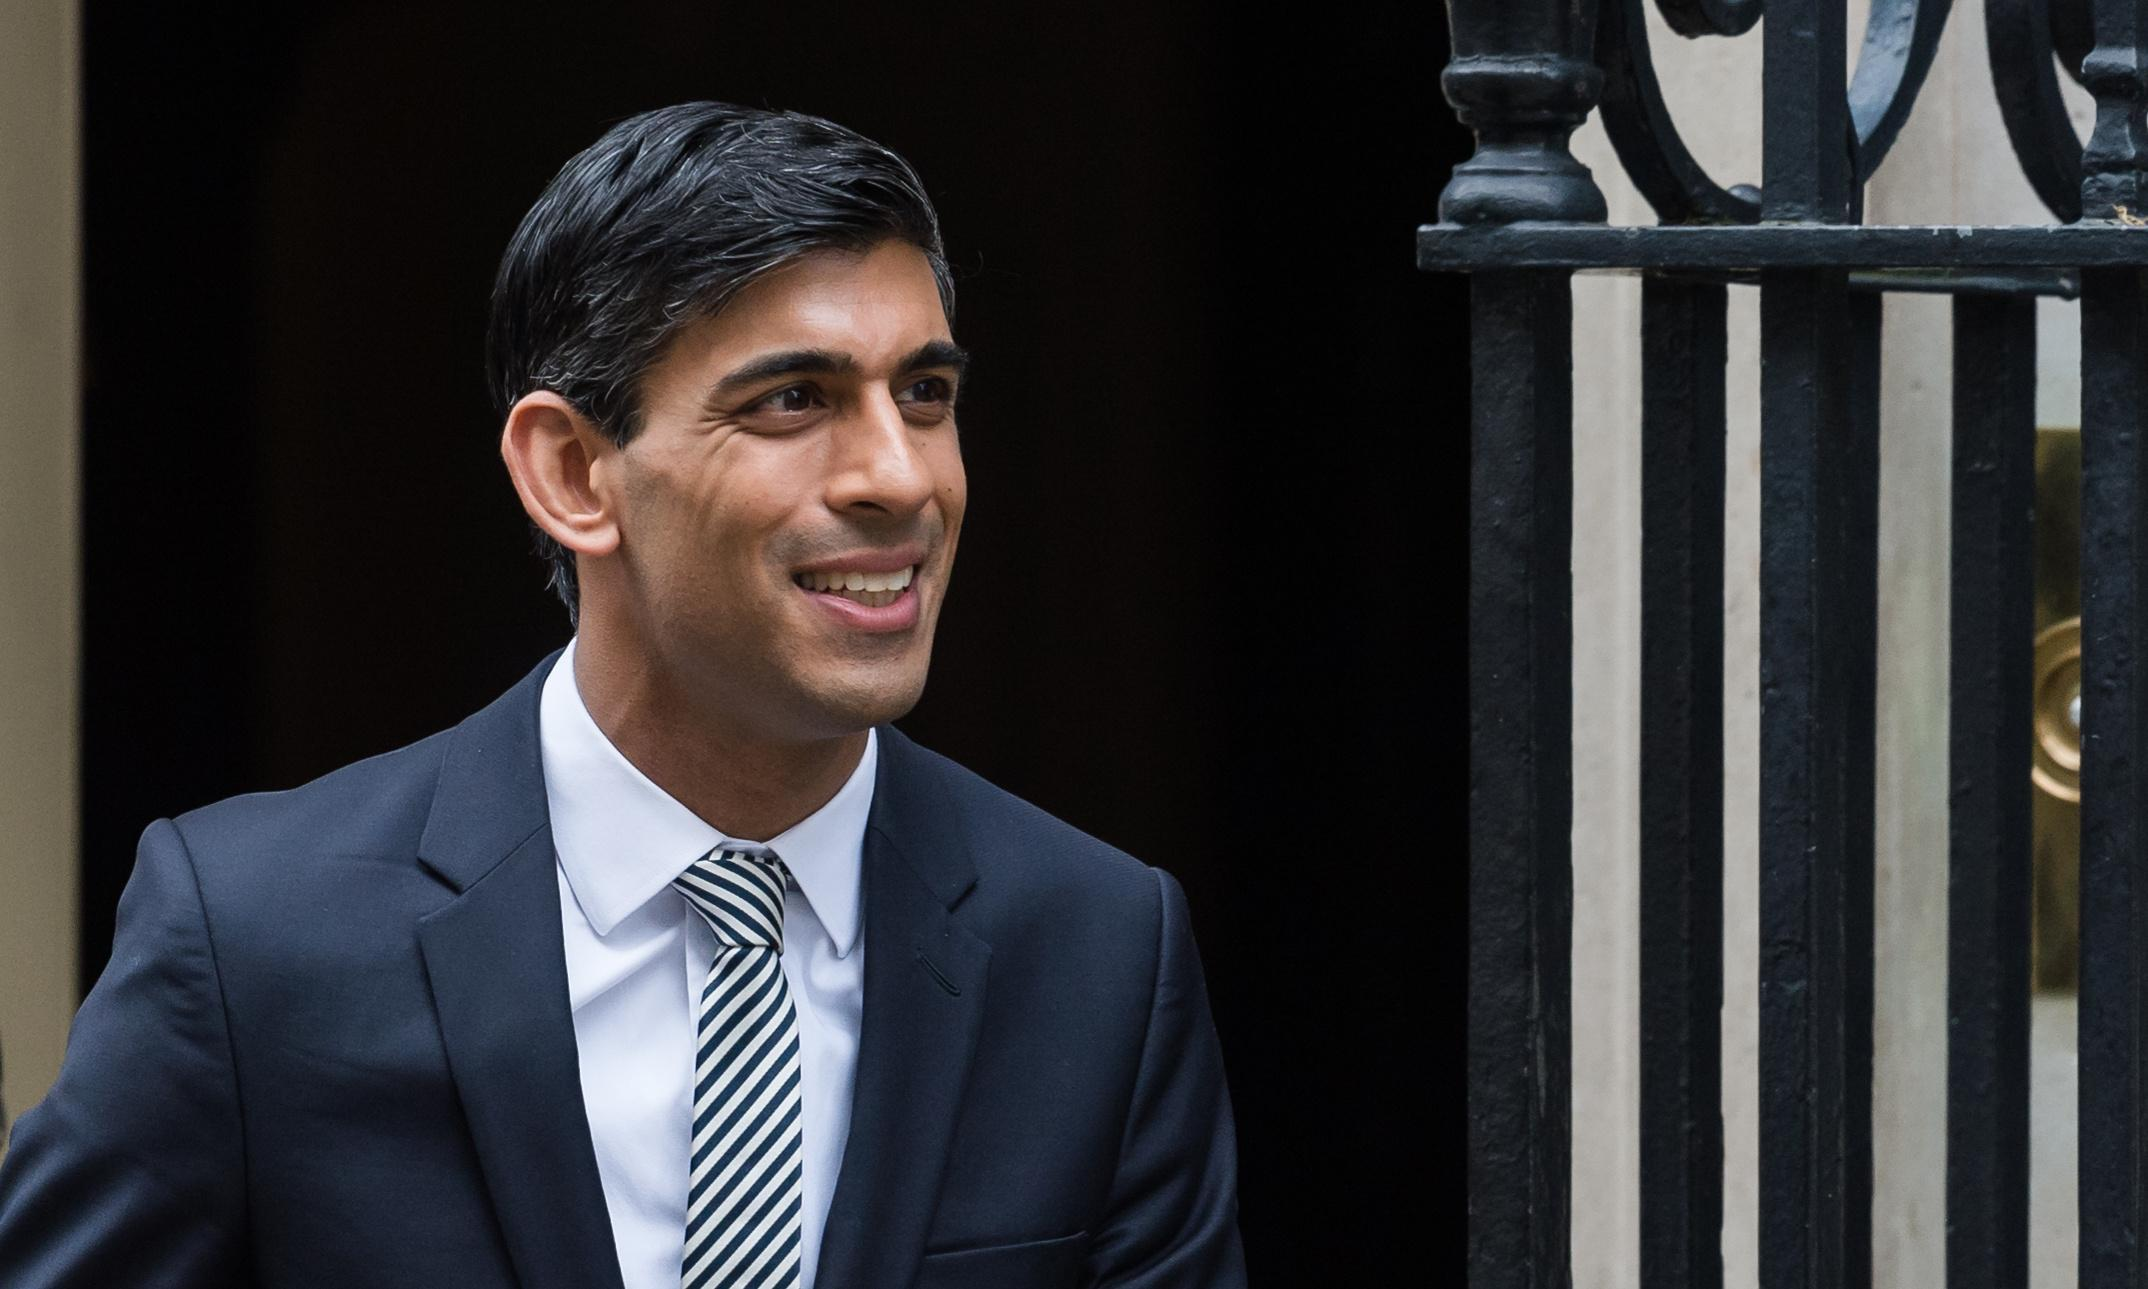 Pre-budget boost for new chancellor despite borrowing rise